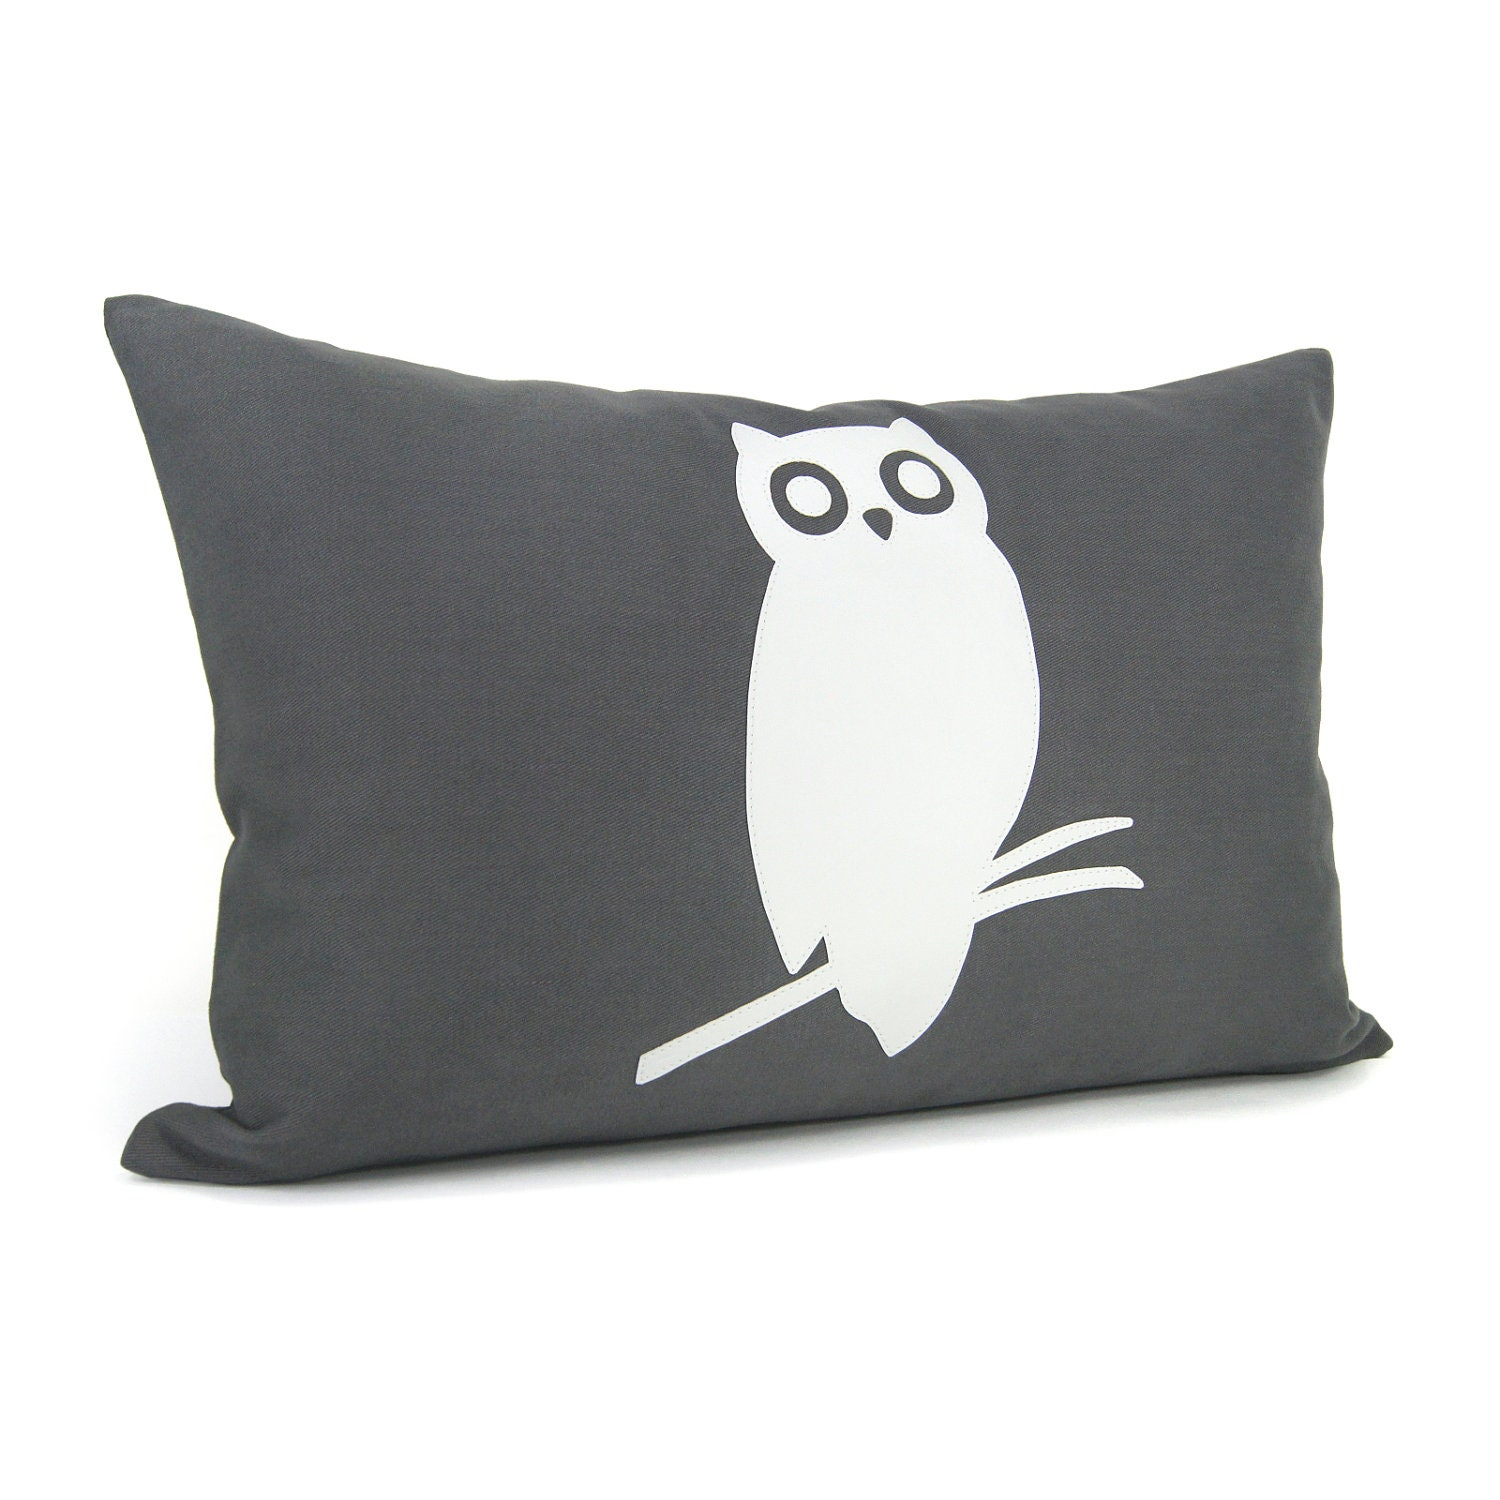 Owl pillow case White and dark grey owl pillow by ClassicByNature